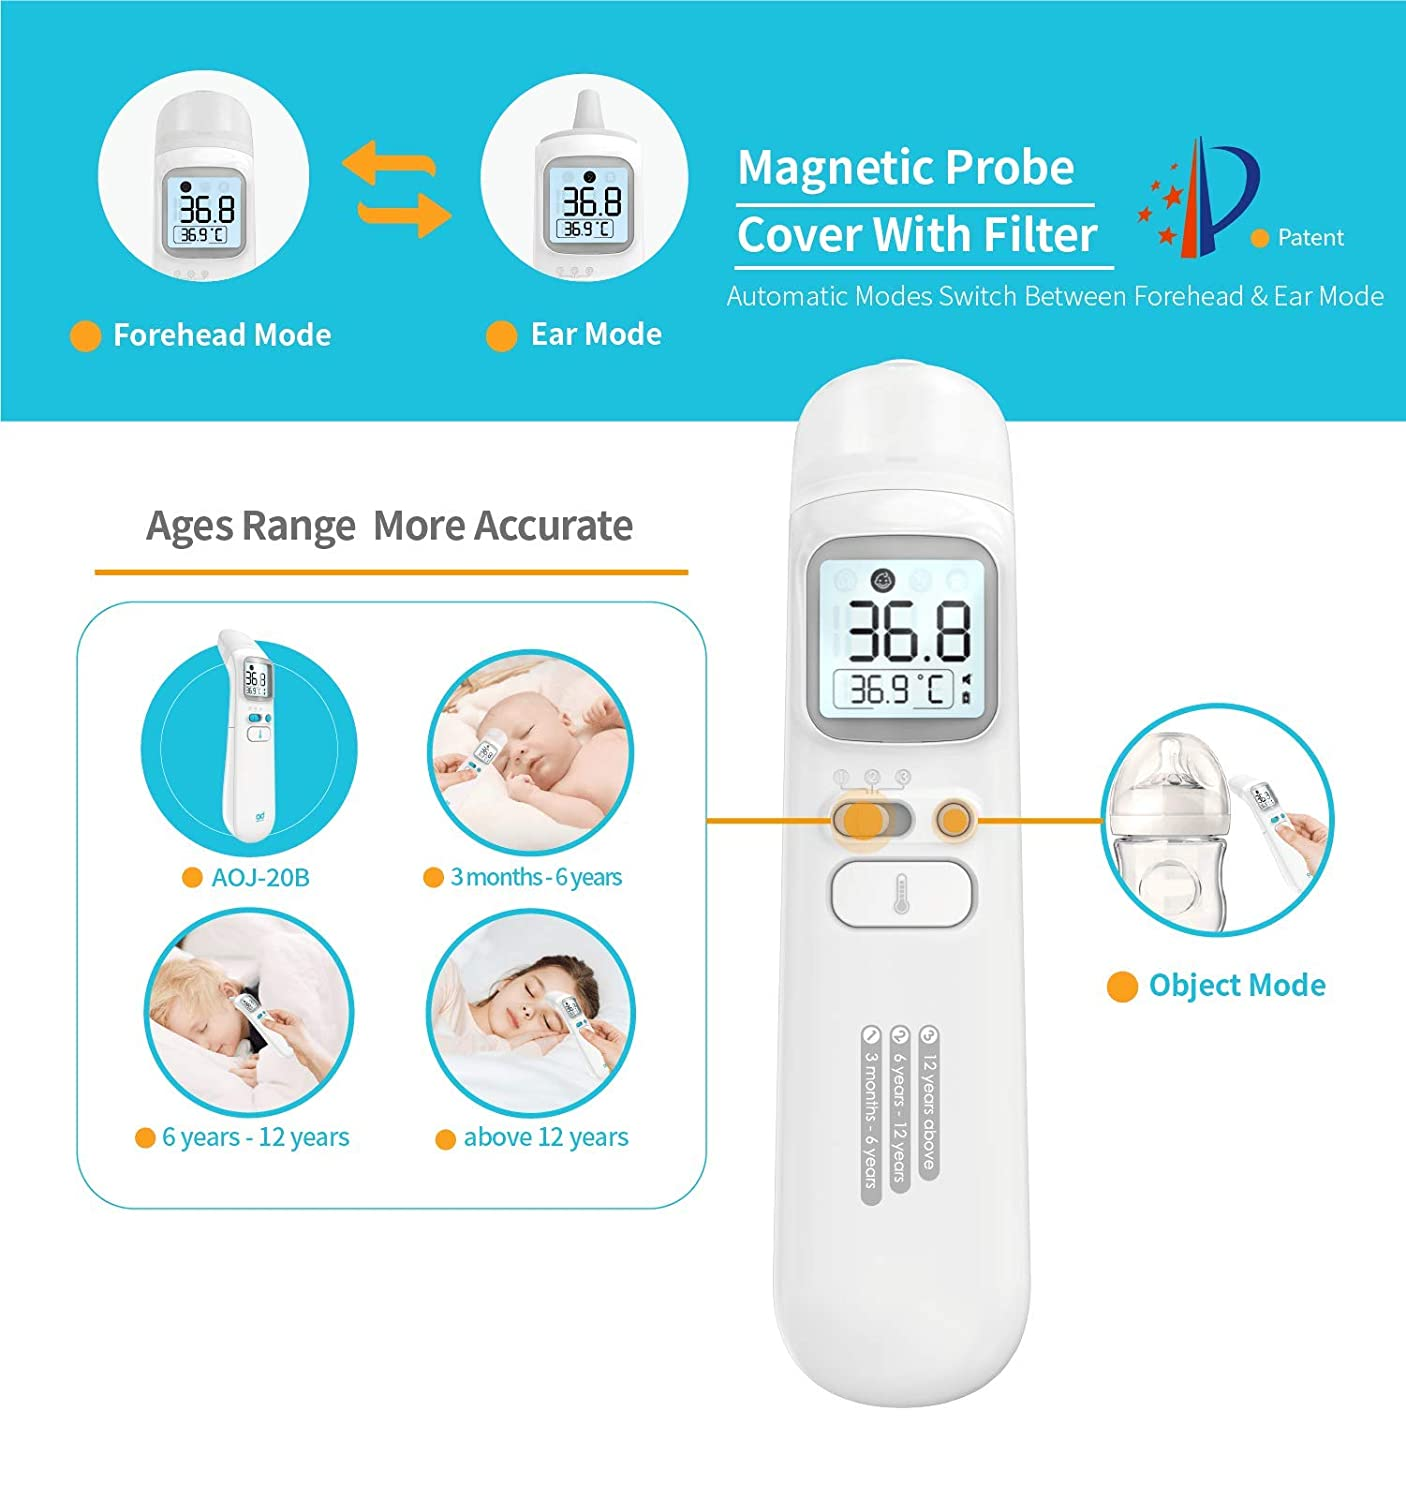 Baby Thermometer, Forehead and Ear Thermometer for Fever Professional Medical Digital Infrared Temporal Thermometer for Fever,1s Instant Accurate Reading for Baby Kids Adults IF Design Award 2019